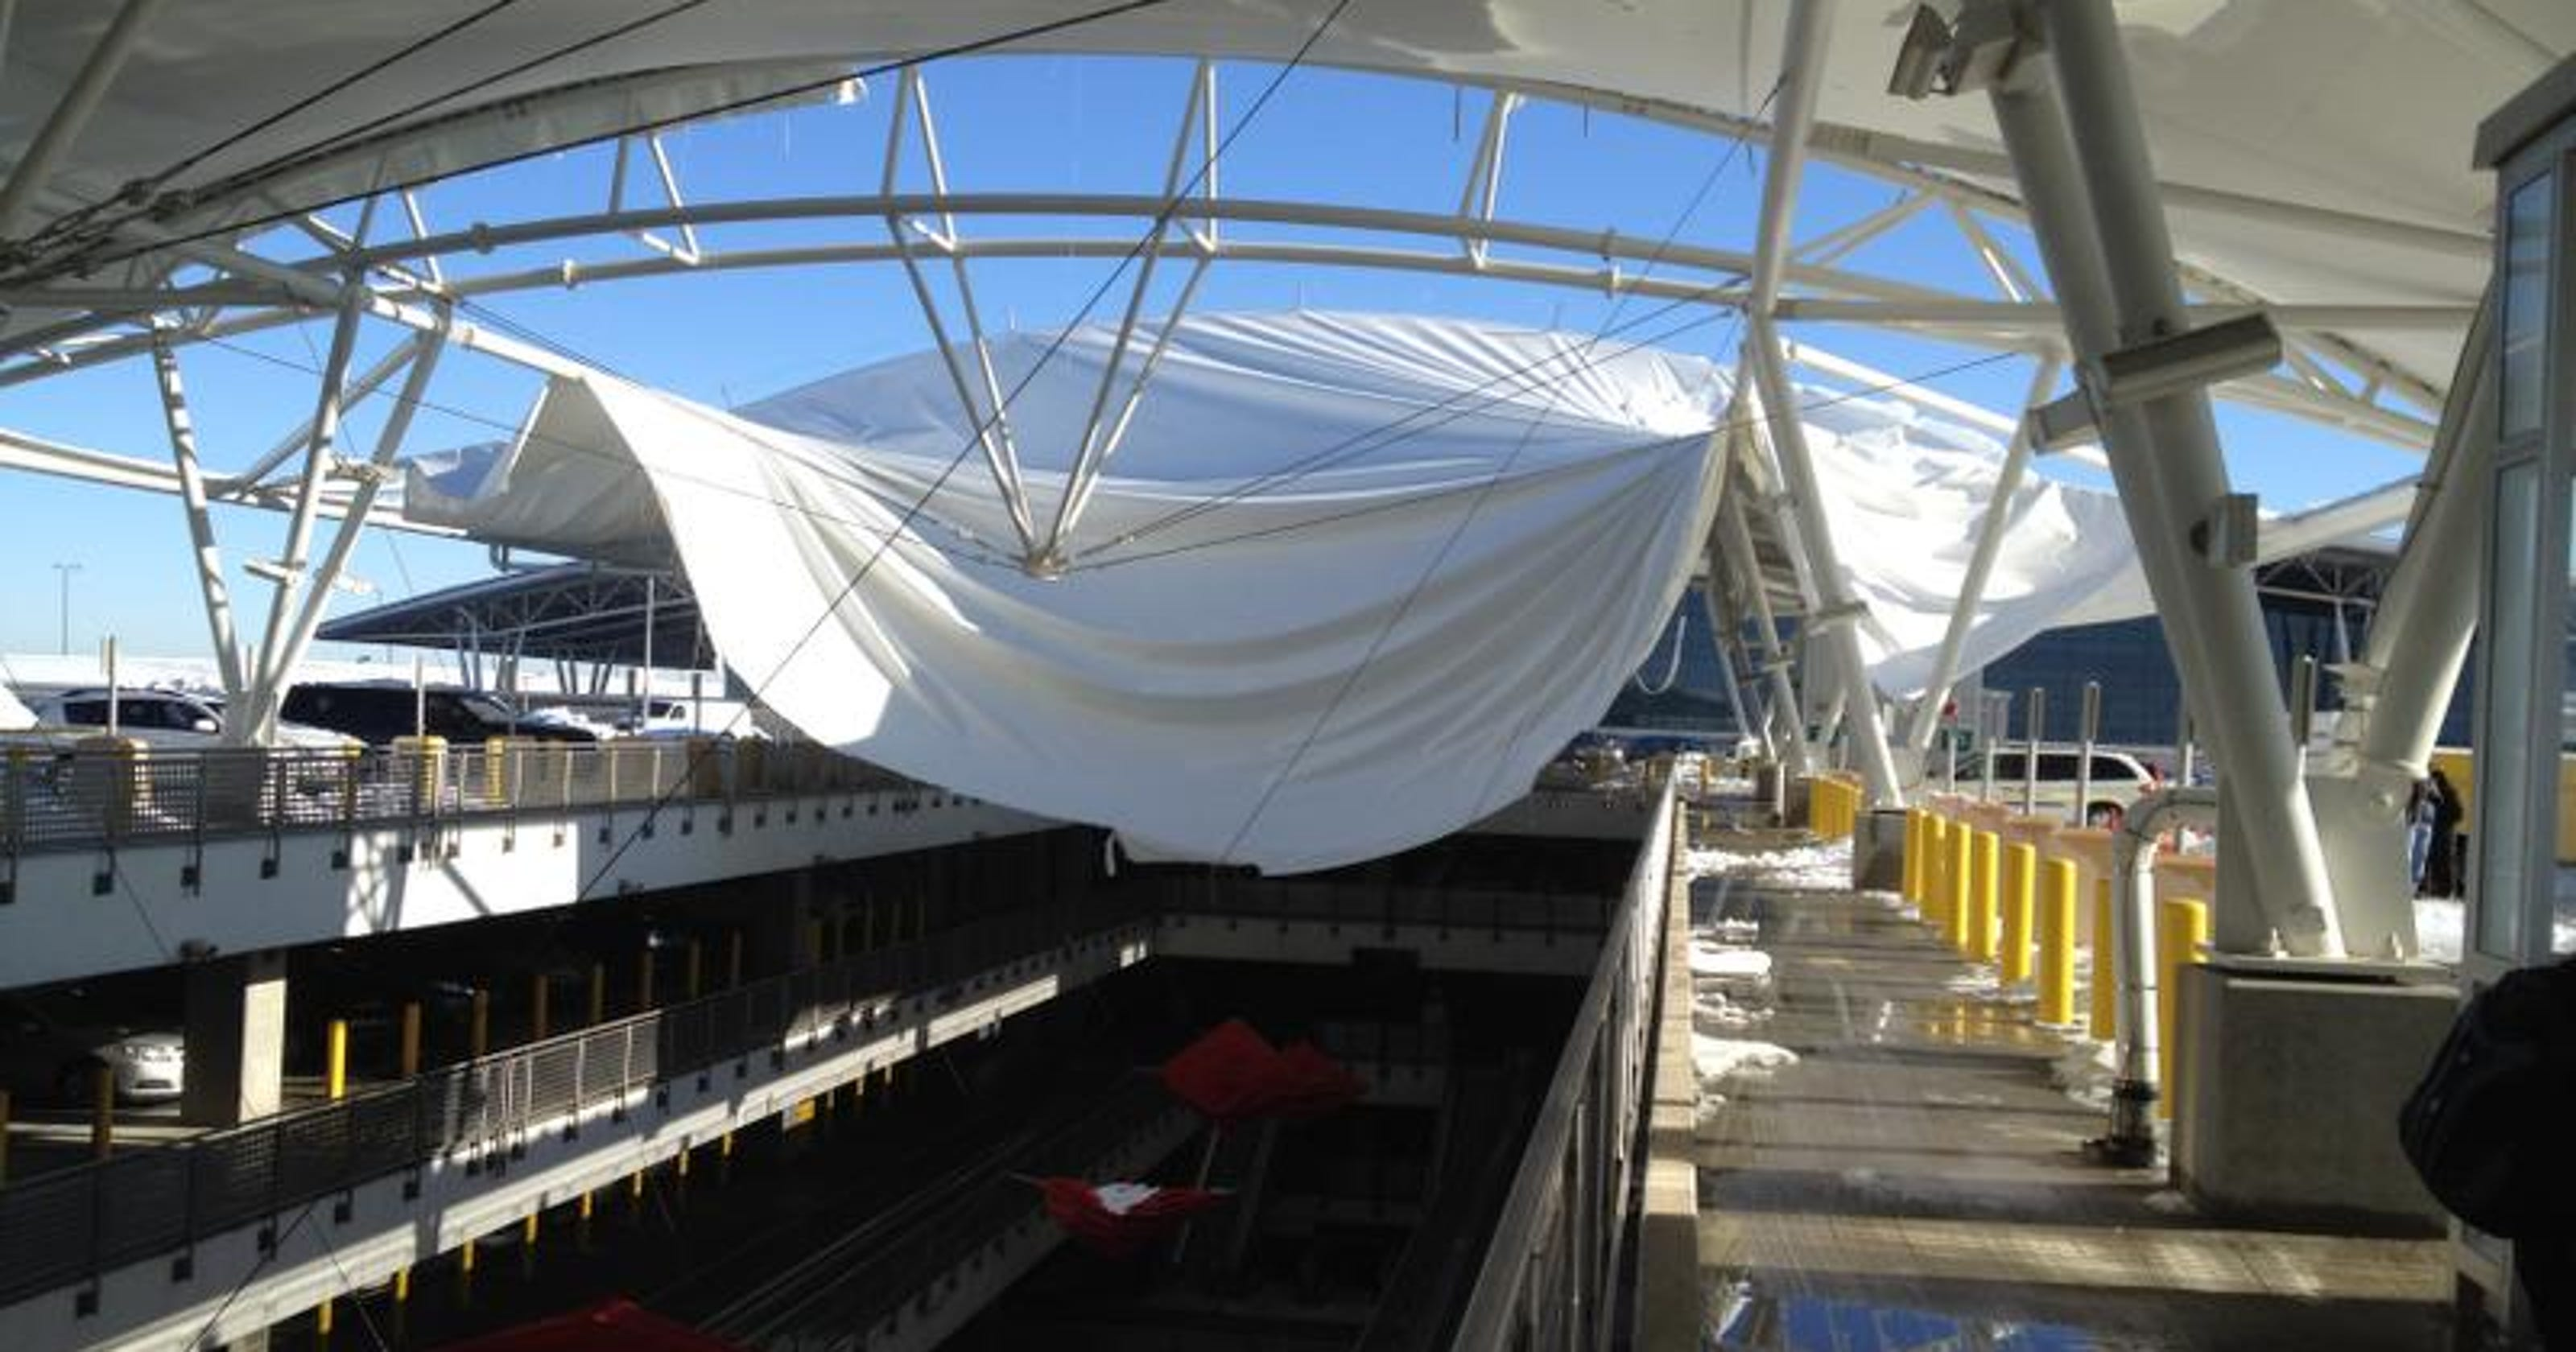 Snow Ice Shred Indianapolis Airport Garage Canopy